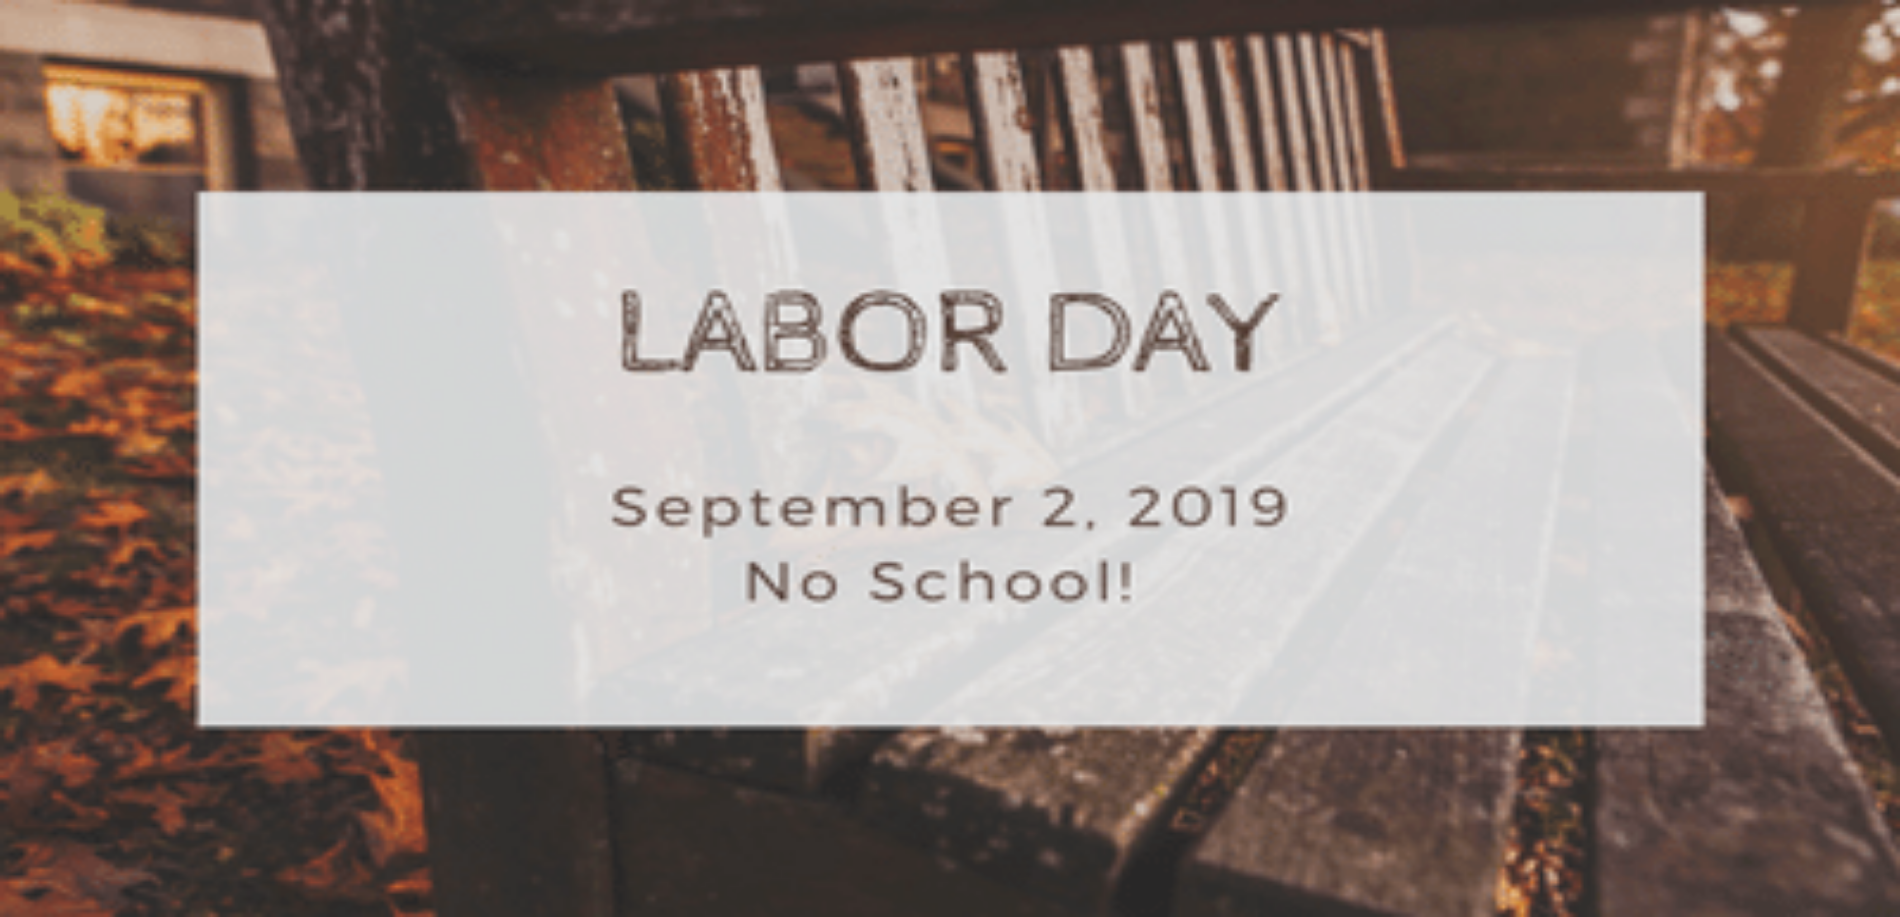 There is no school on Labor Day, September 2, 2019.